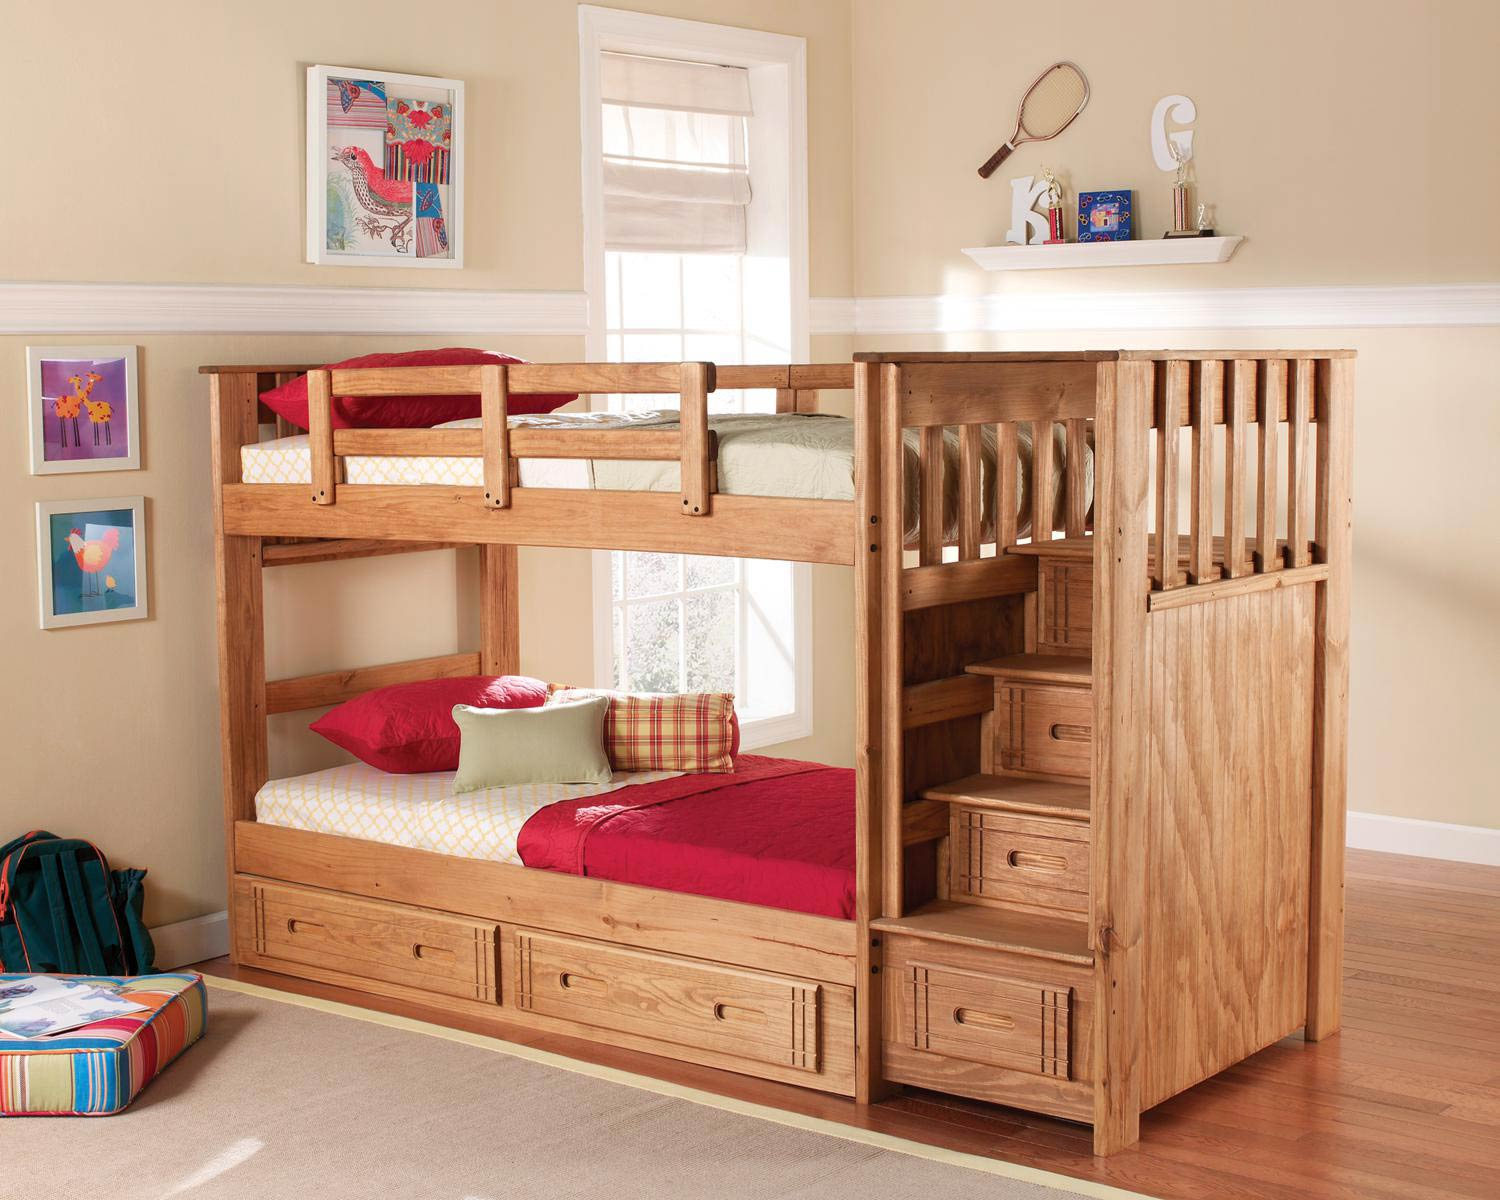 Chelsea Home Furniture Twin Over Twin Stairway Bunk with Underbed Storage - Honey 364001-S